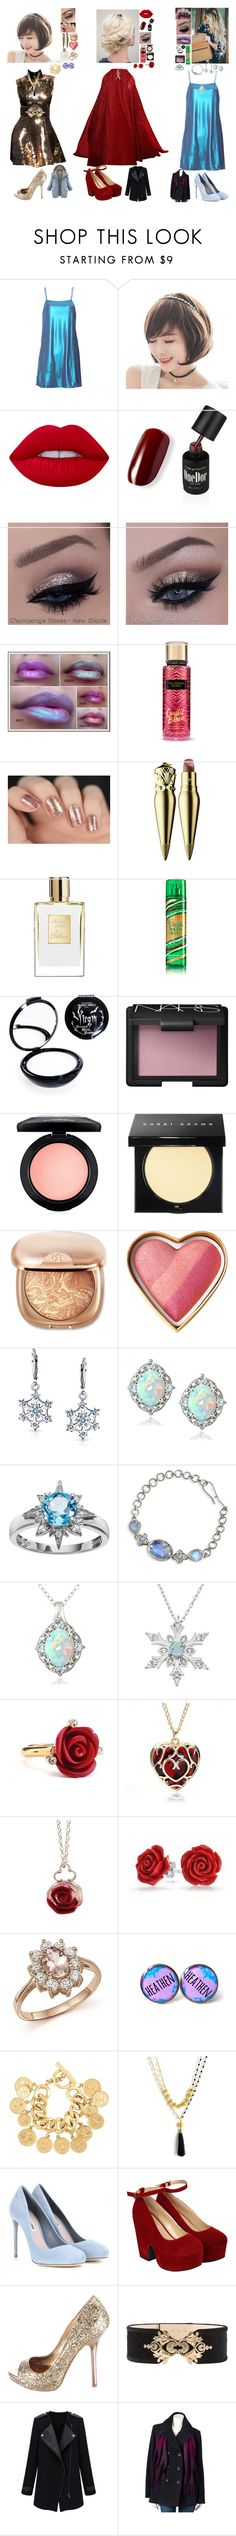 """""""three best freinds"""" by frostedrose ❤ liked on Polyvore featuring Elie Saab, Gareth Pugh, Lime Crime, Christian Louboutin, Manic Panic NYC, NARS Cosmetics, MAC Cosmetics, Bobbi Brown Cosmetics, Bling Jewelry and Enduring Jewels"""